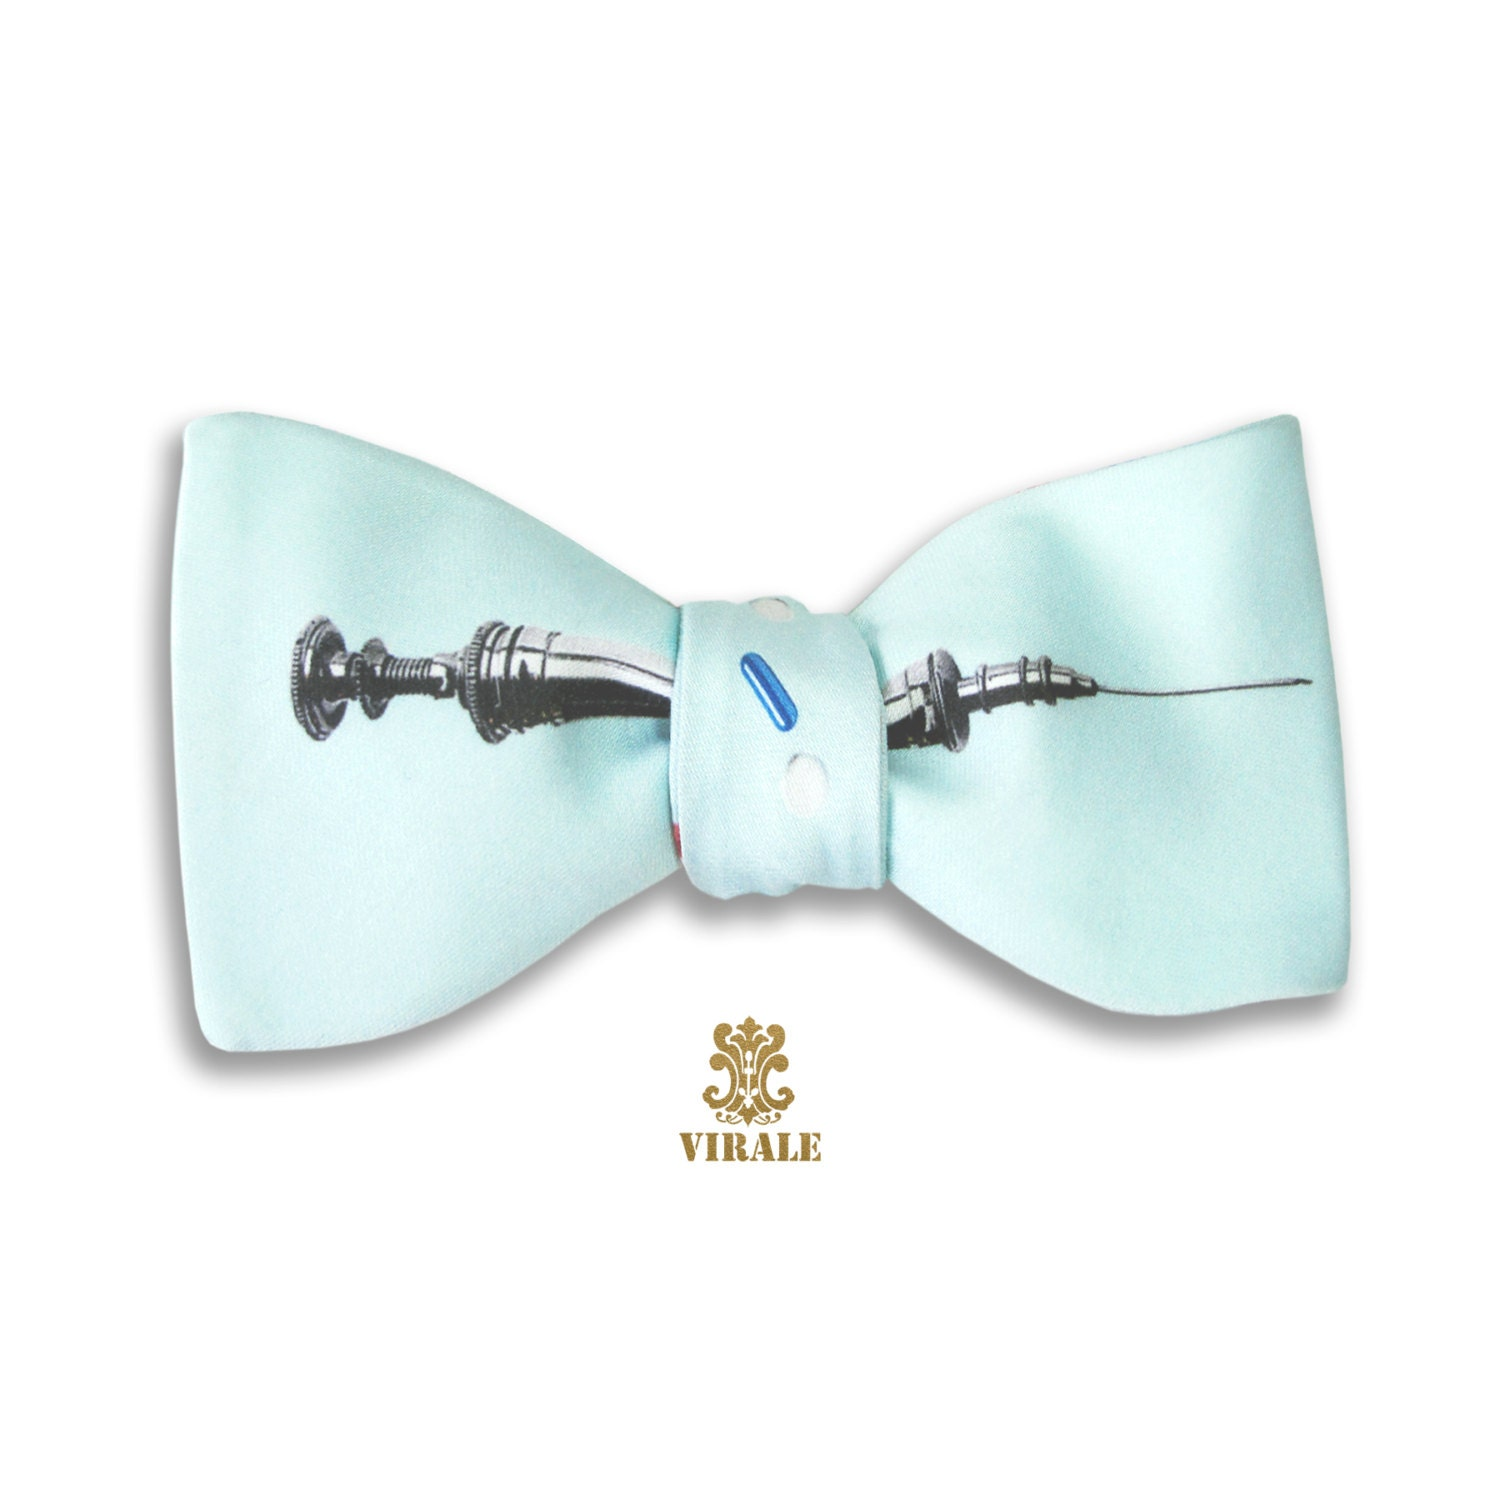 Virale By Dr B Cramping Drugs Bow Tie Inspired By Dorothy Parker